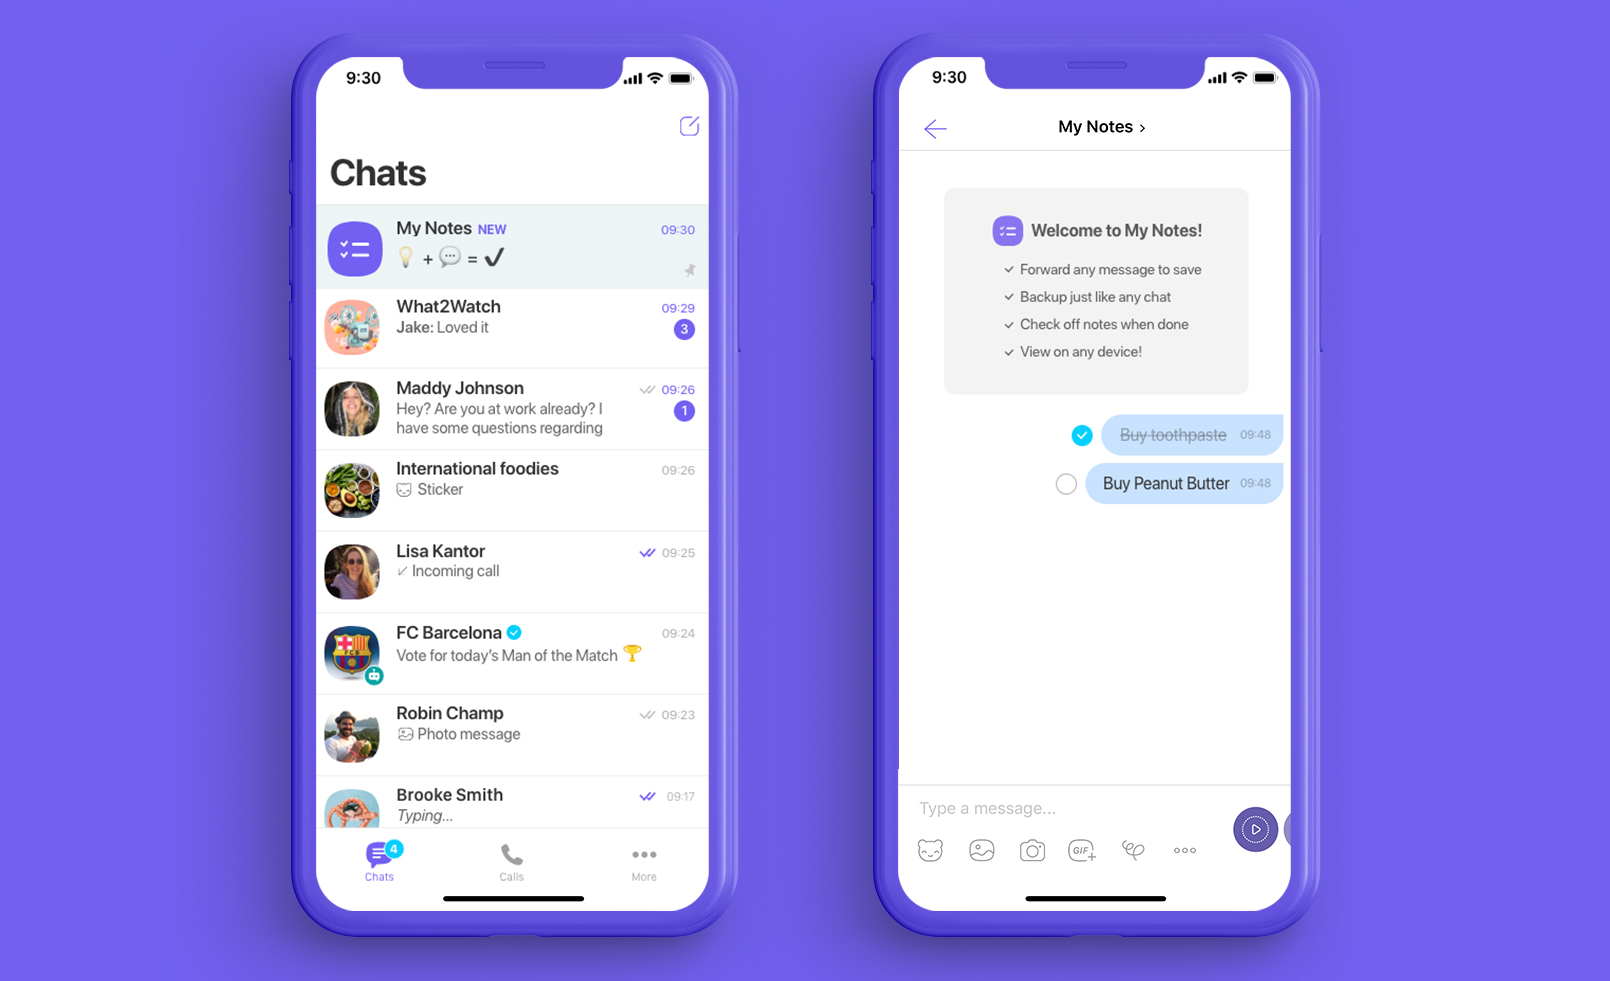 An image of Viber, an alternative to Telegram.